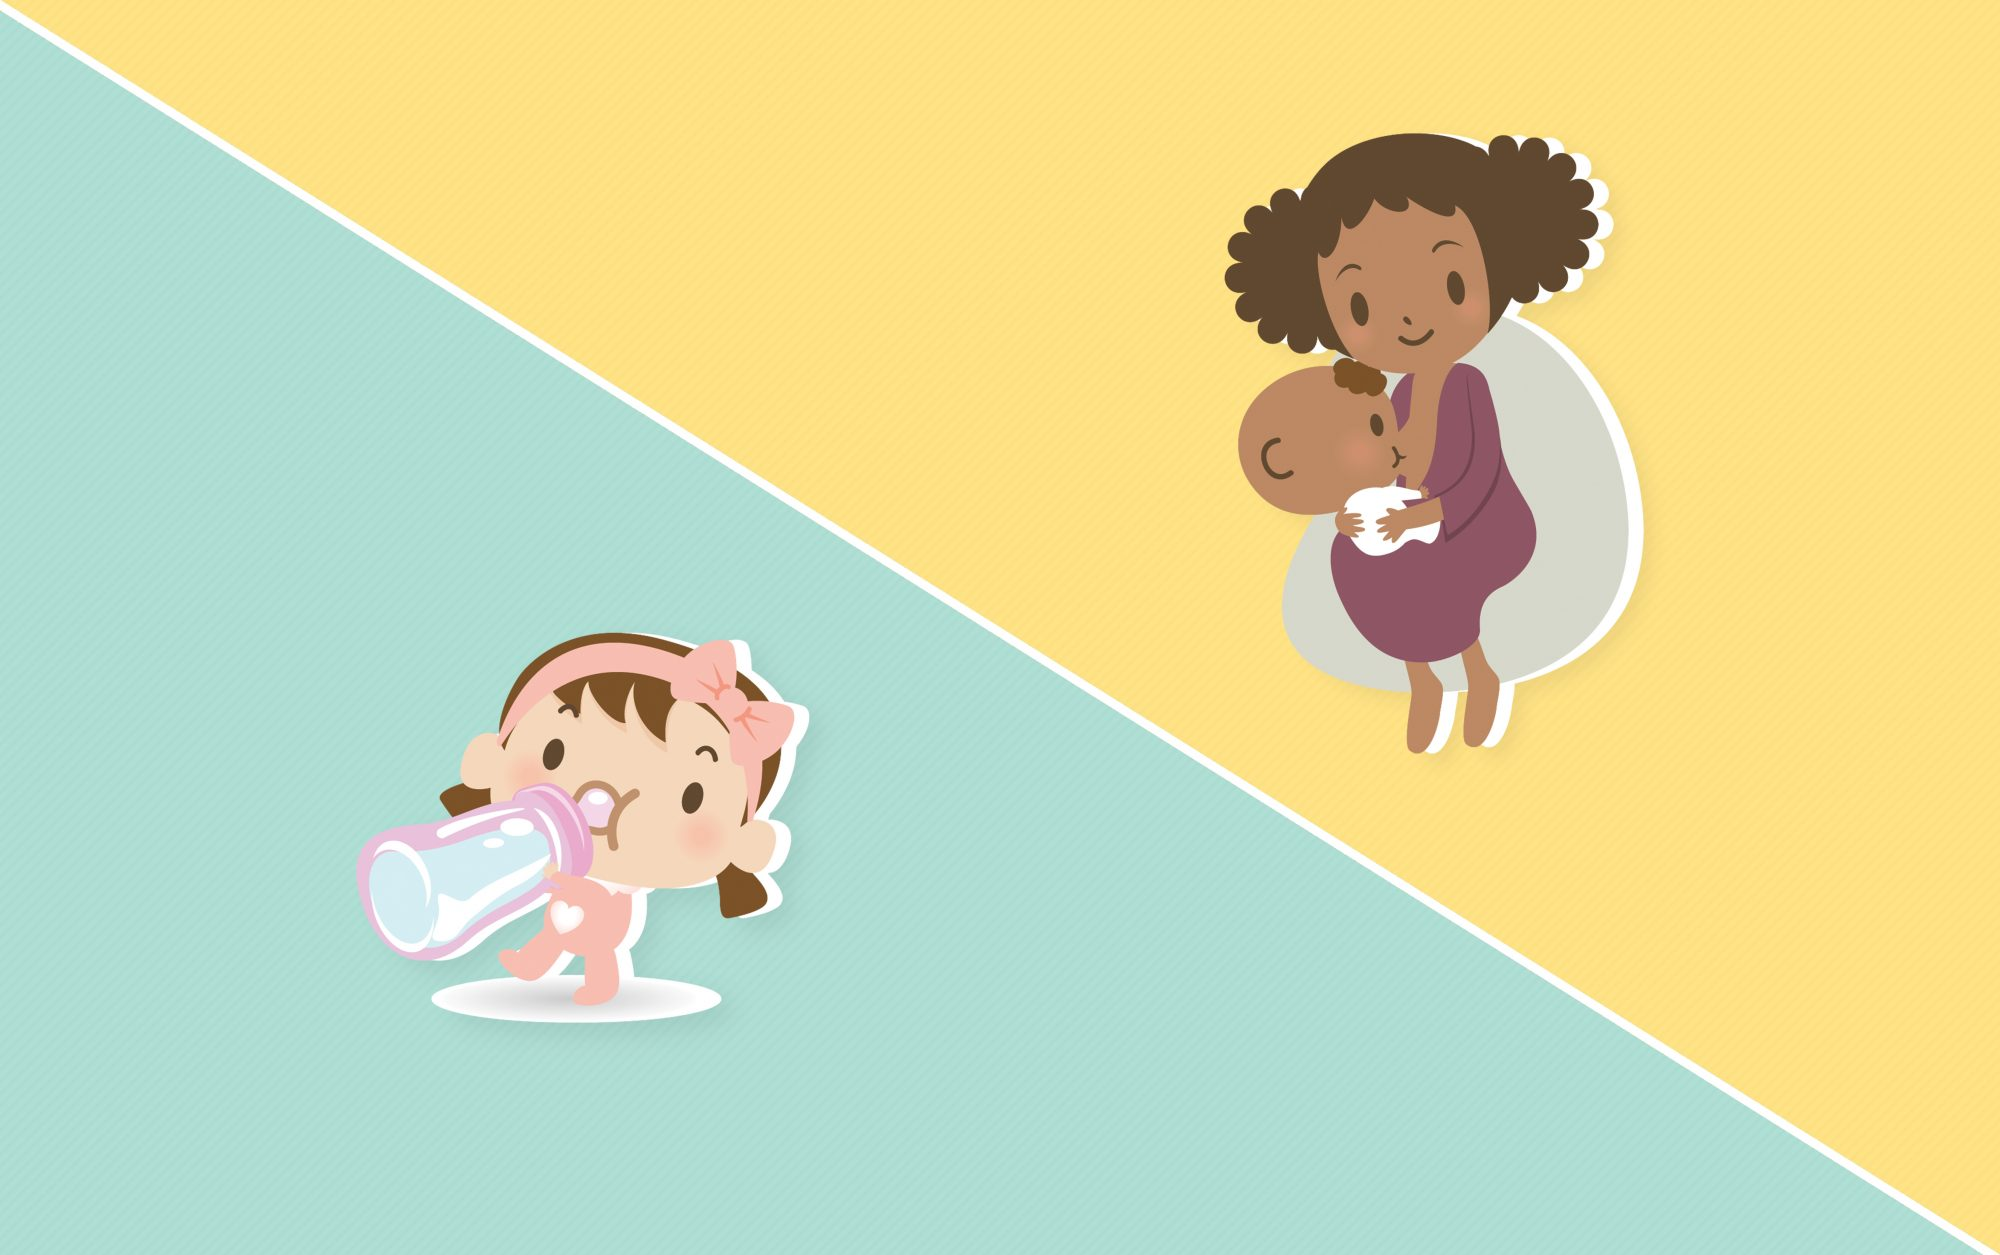 cartoon illustration of baby drinking milk from bottle and mother breastfeeding child on a colored background